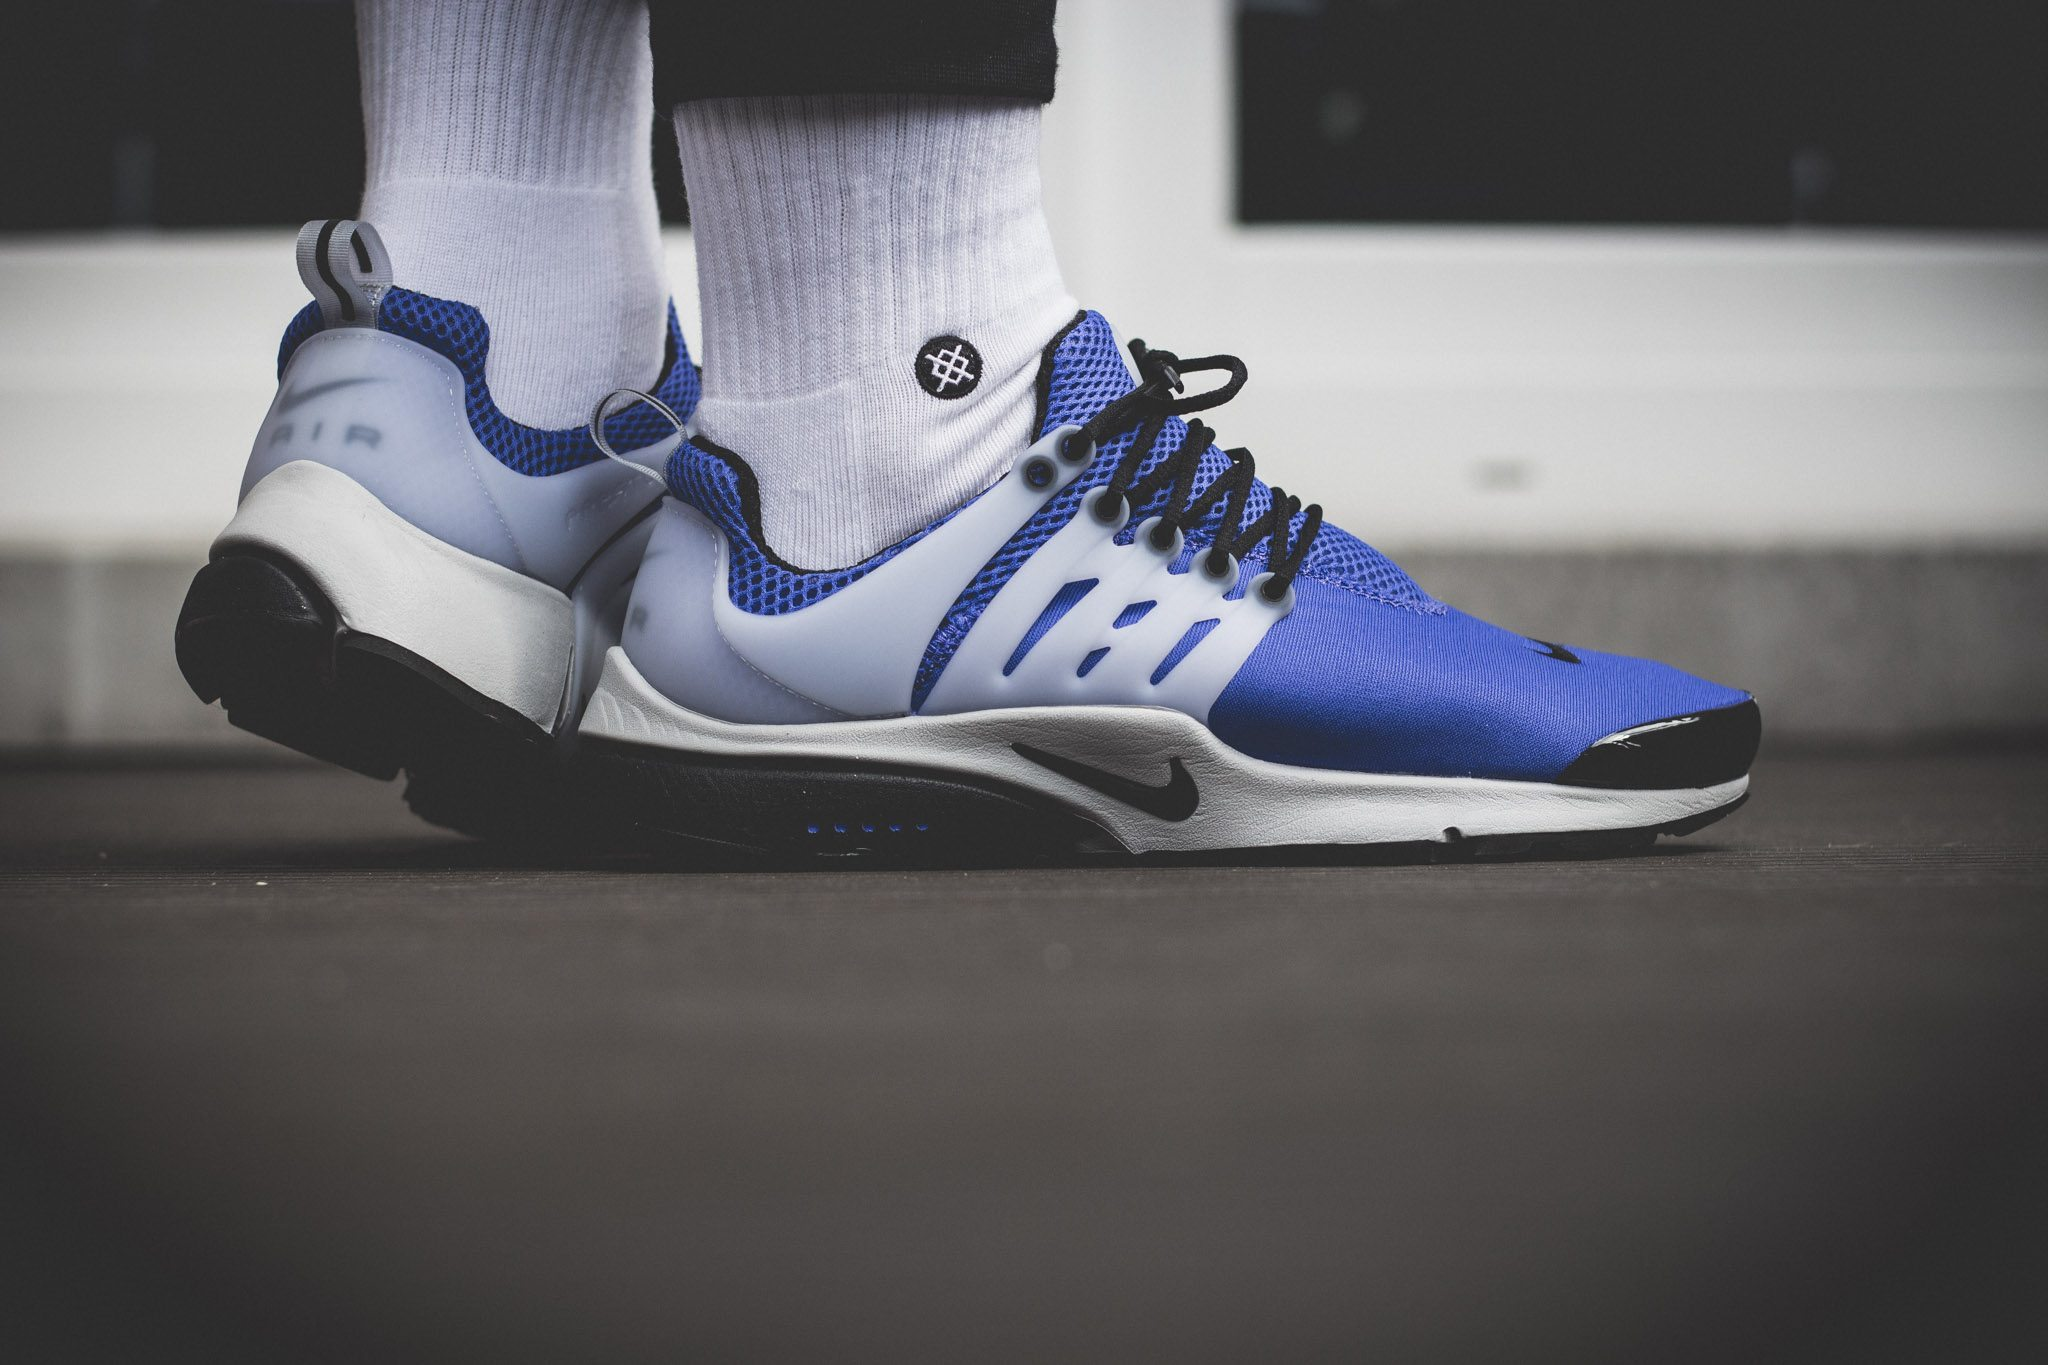 Nike Air Presto Persion Violet On Feet 10